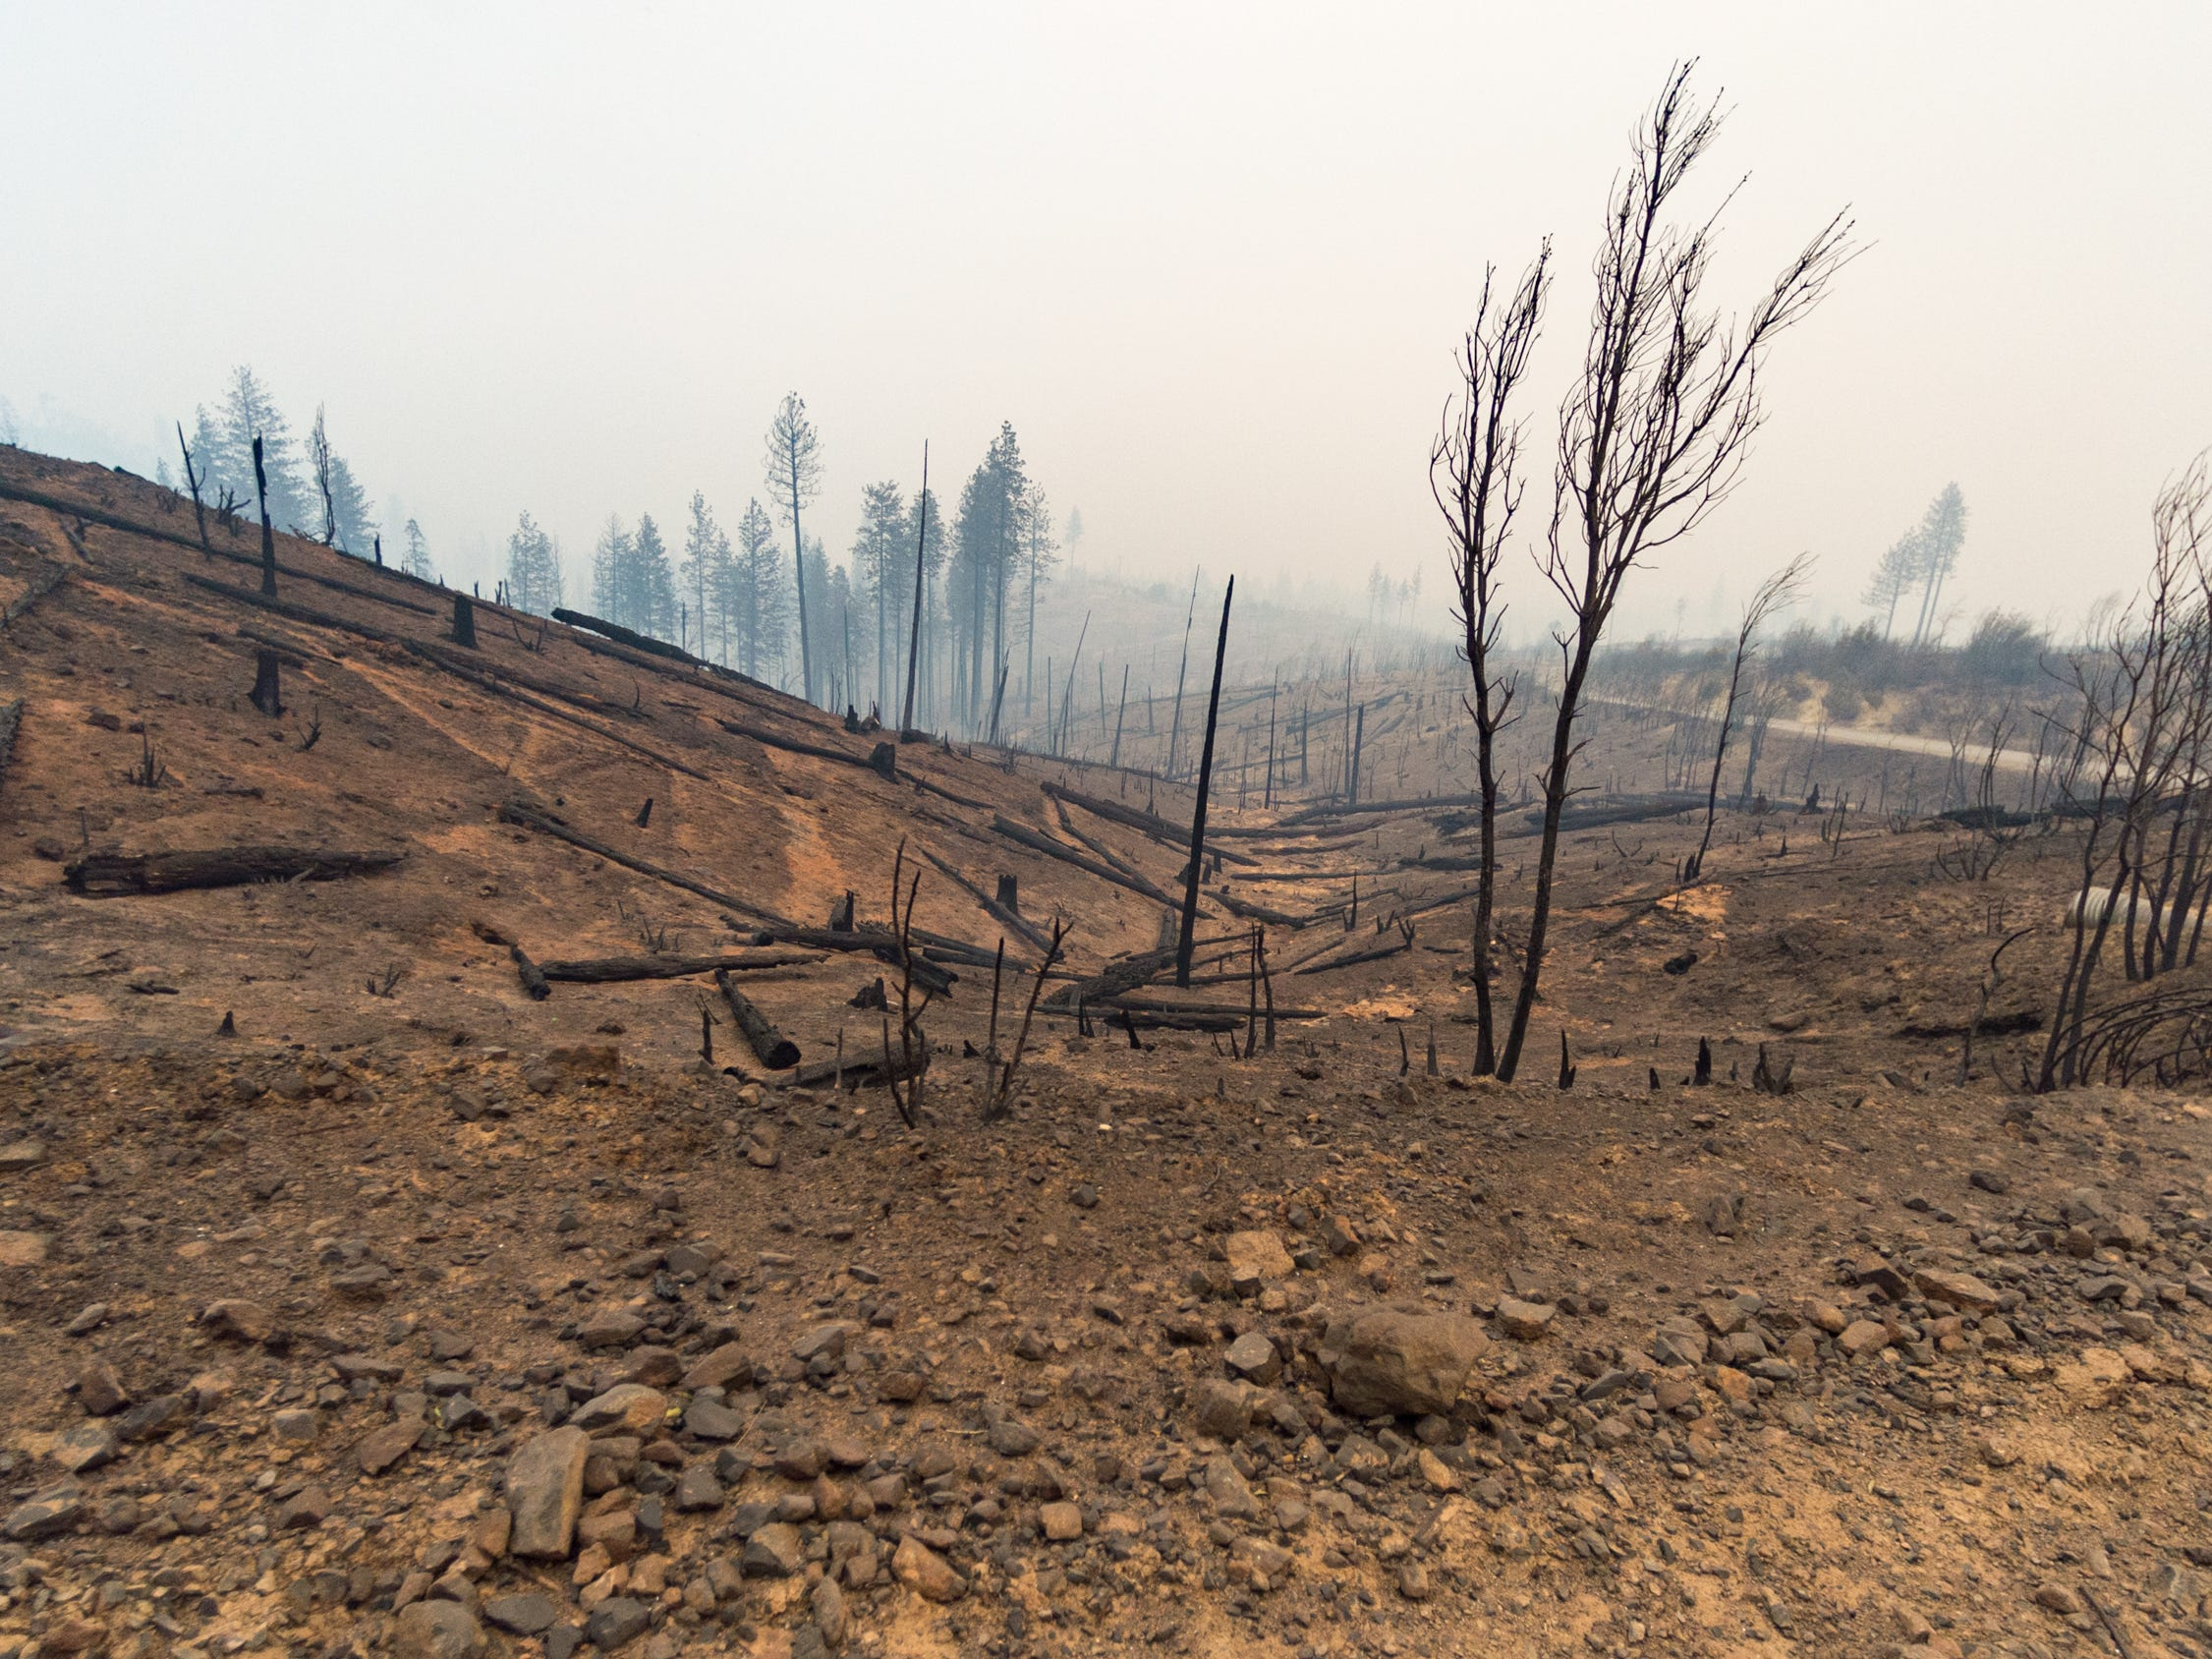 The Camp Fire causes extensive damage near Butte Valley, Calf., Monday, Nov. 12, 2018.